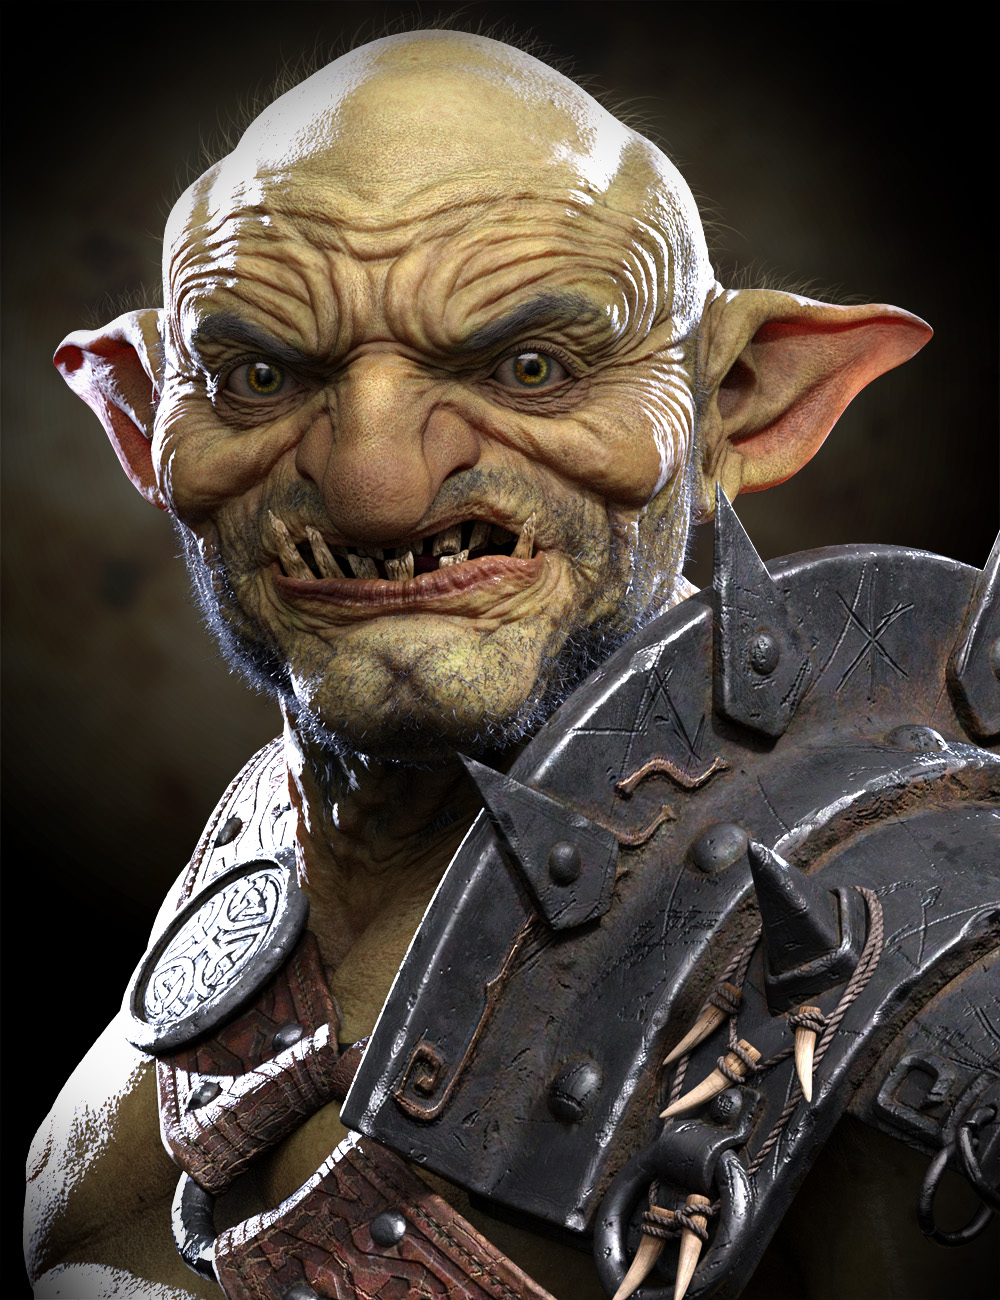 War Goblin HD for Genesis 8.1 Male by: Josh Crockett, 3D Models by Daz 3D